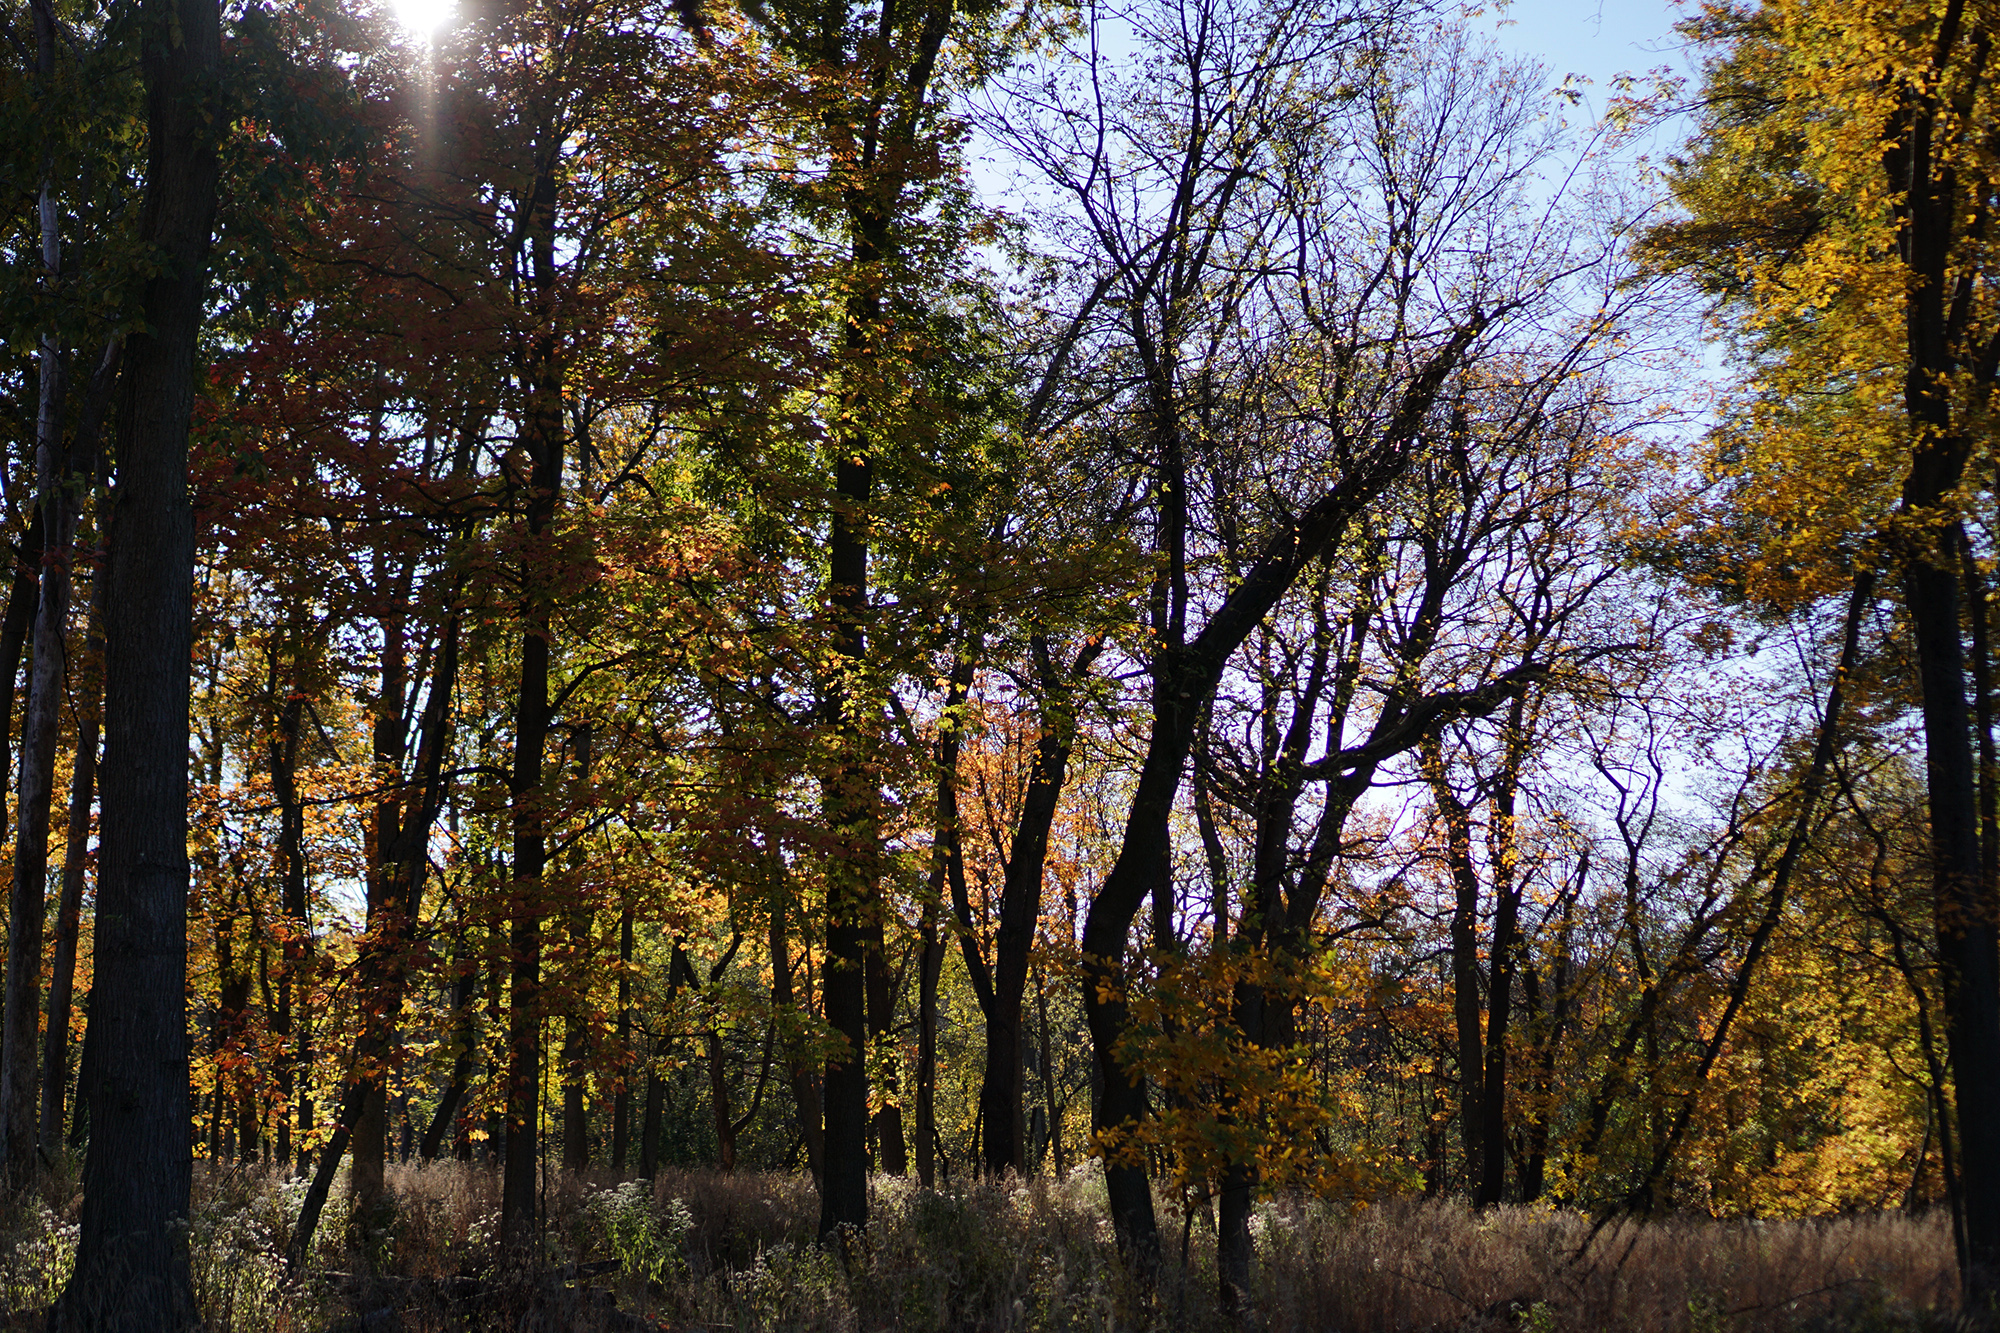 Autumn trees in Miami Woods, Morton Grove Illinois / Darker than Green